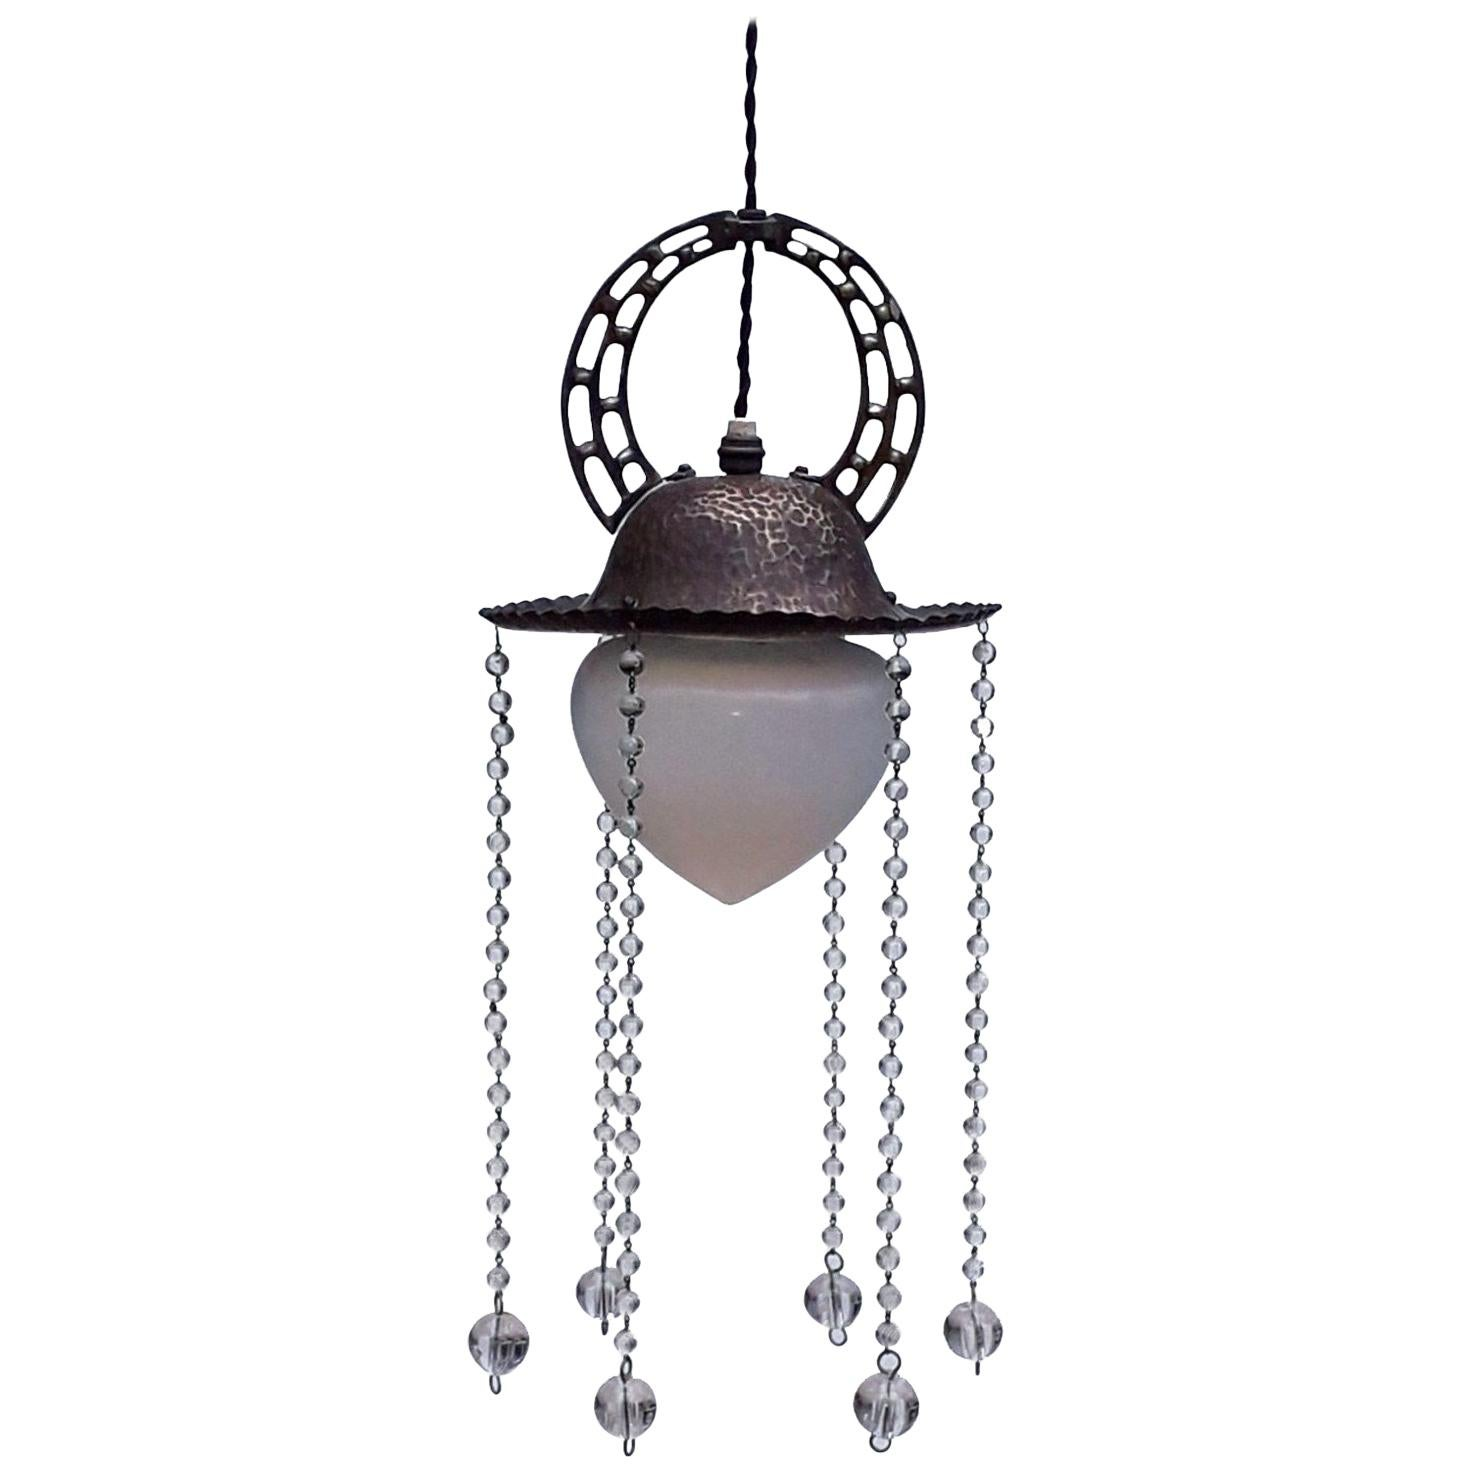 1890s lighting 312 for sale at 1stdibs